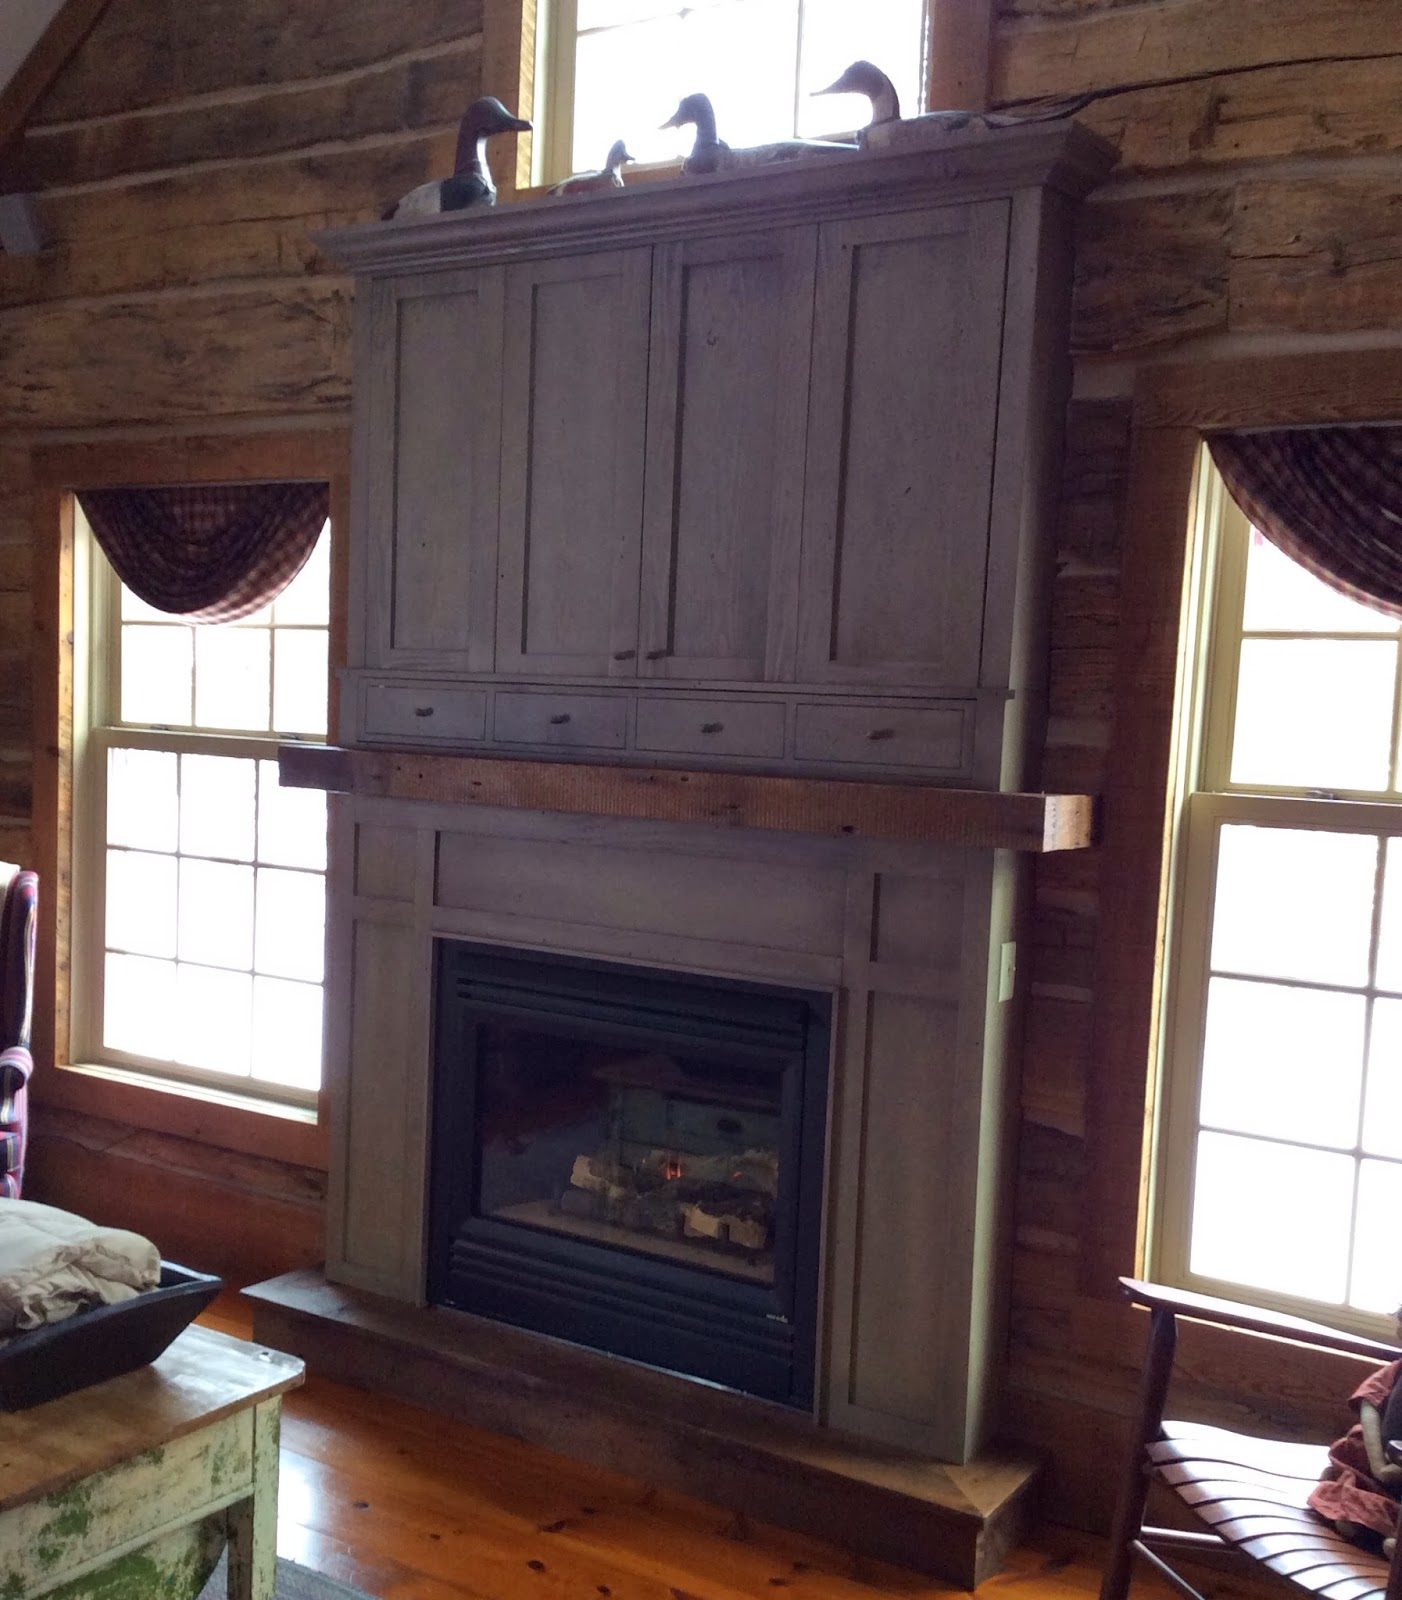 1000+ images about Fireplace and Mantels on Pinterest ...